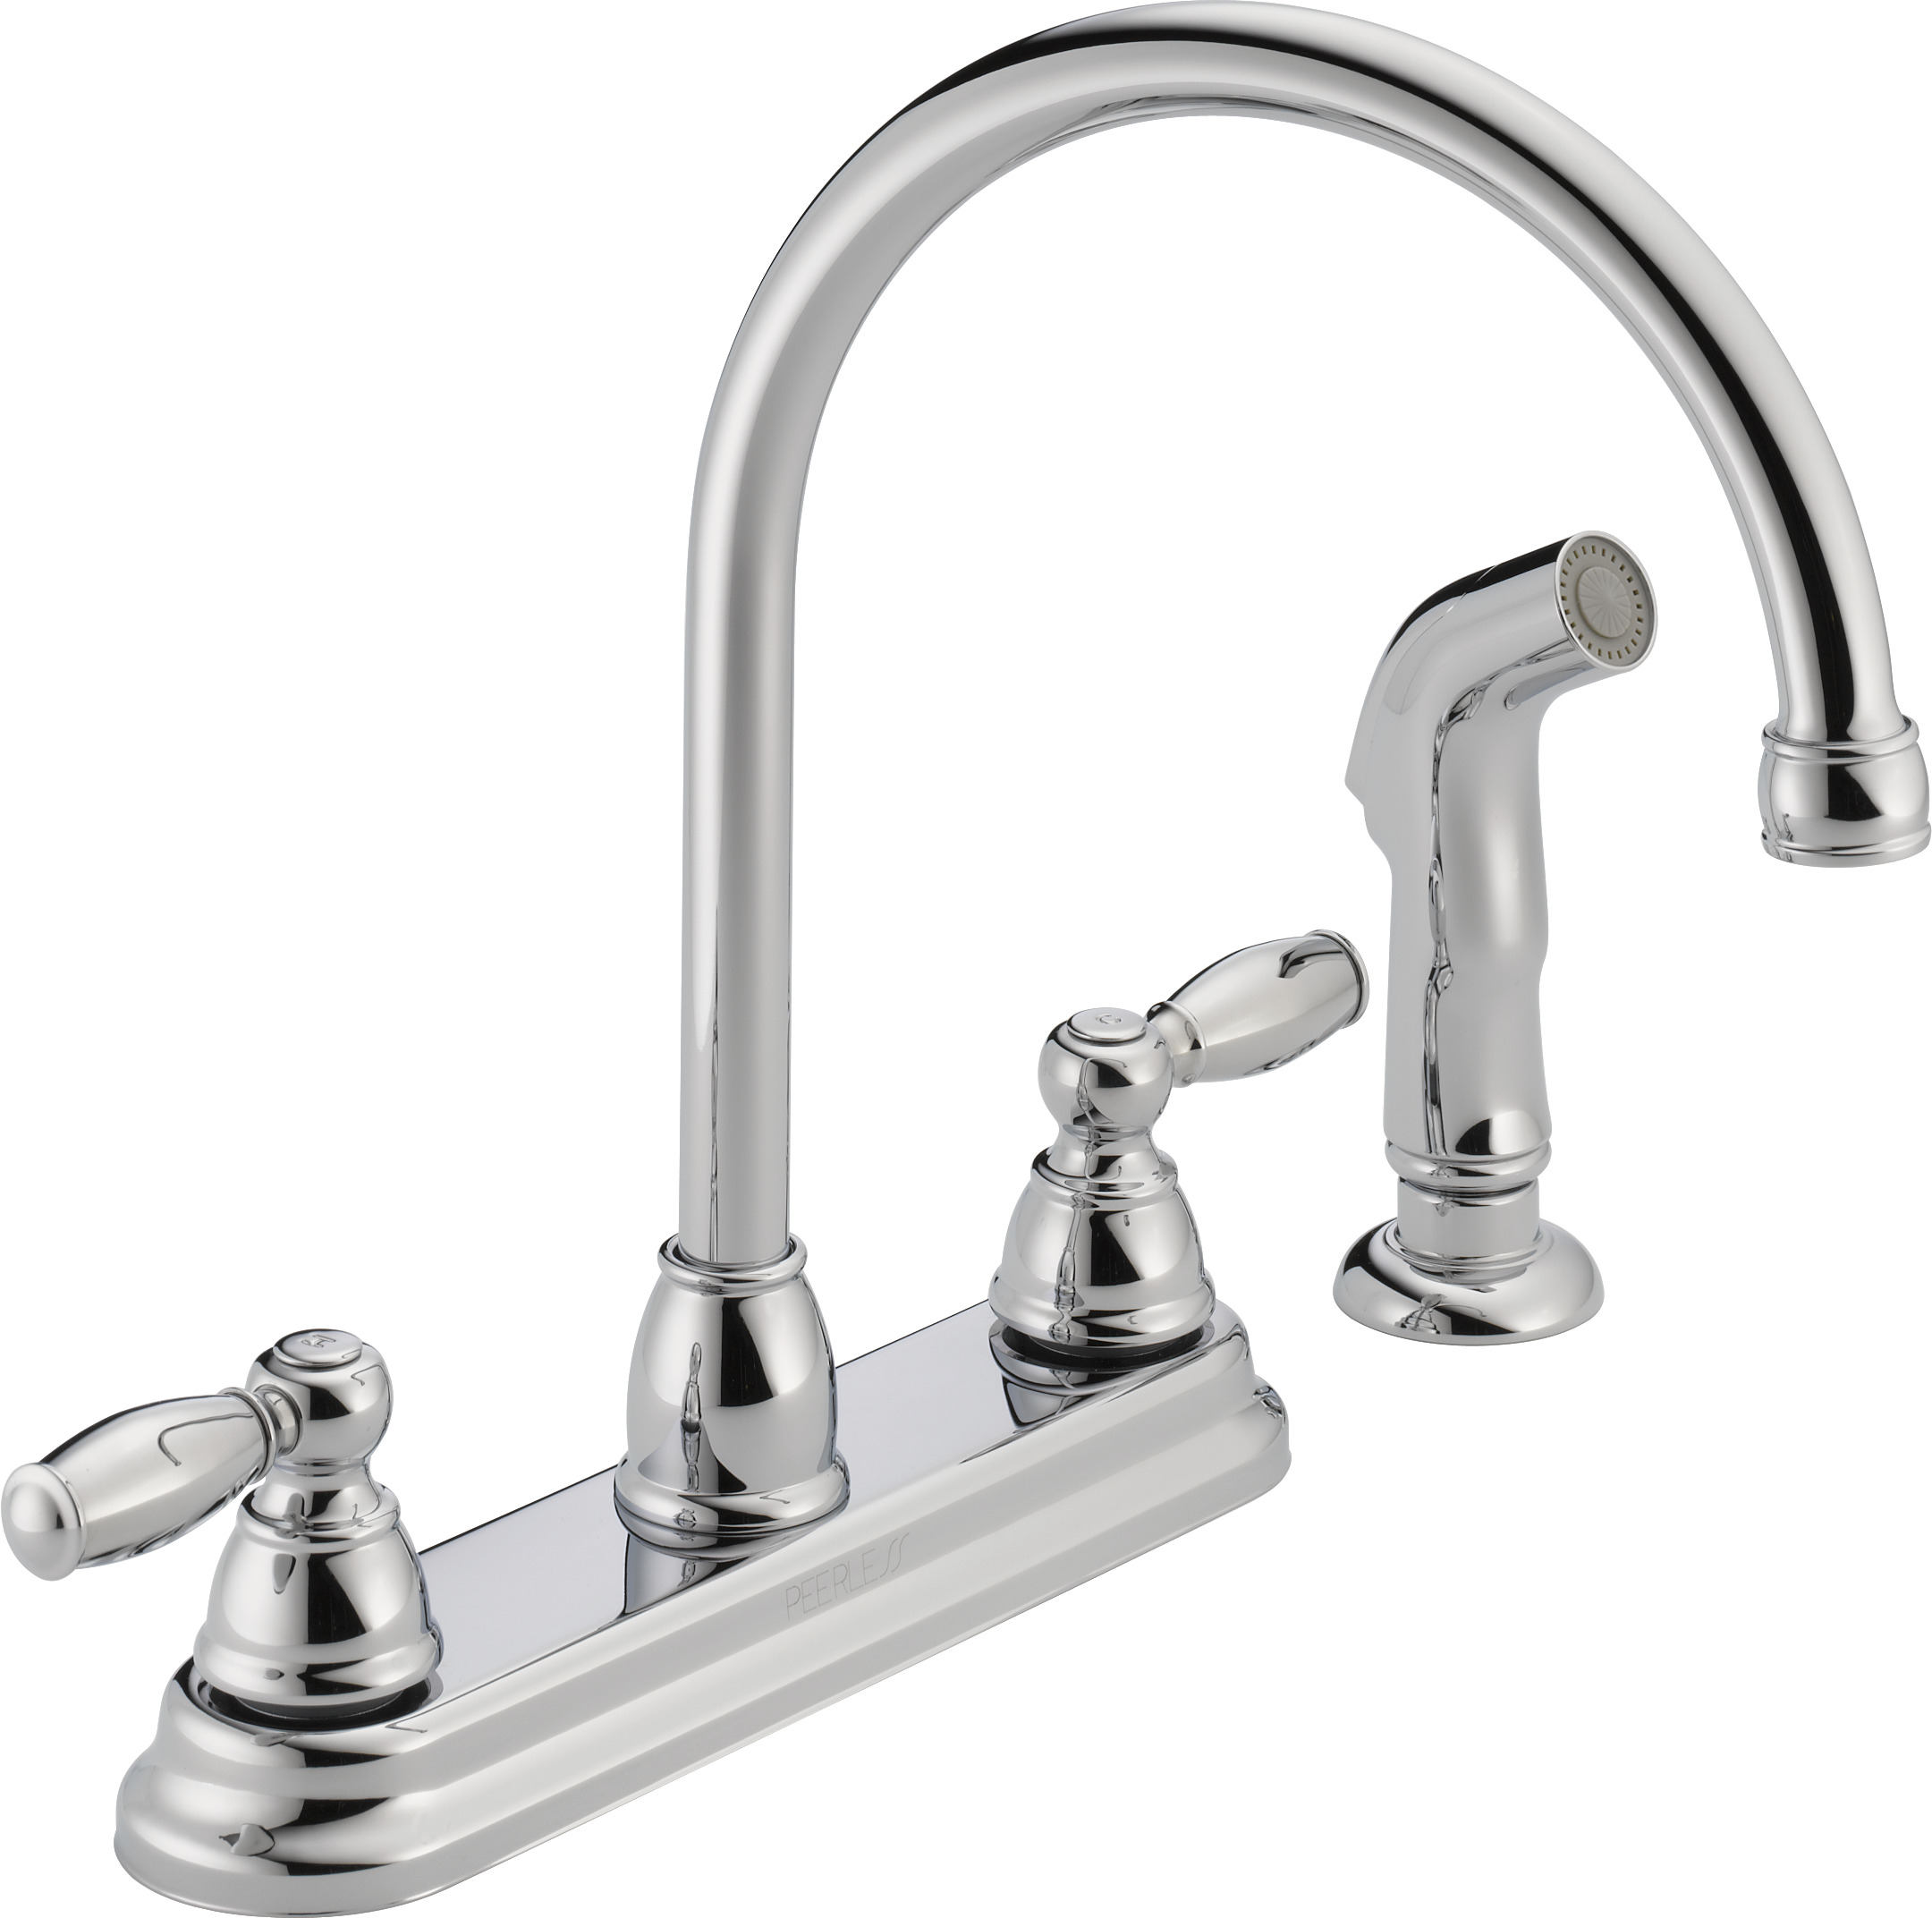 Peerless Apex Two Handle Kitchen Faucet with Side Sprayer in Chrome P299575LF-W  sc 1 st  Walmart & Peerless Kitchen Faucets